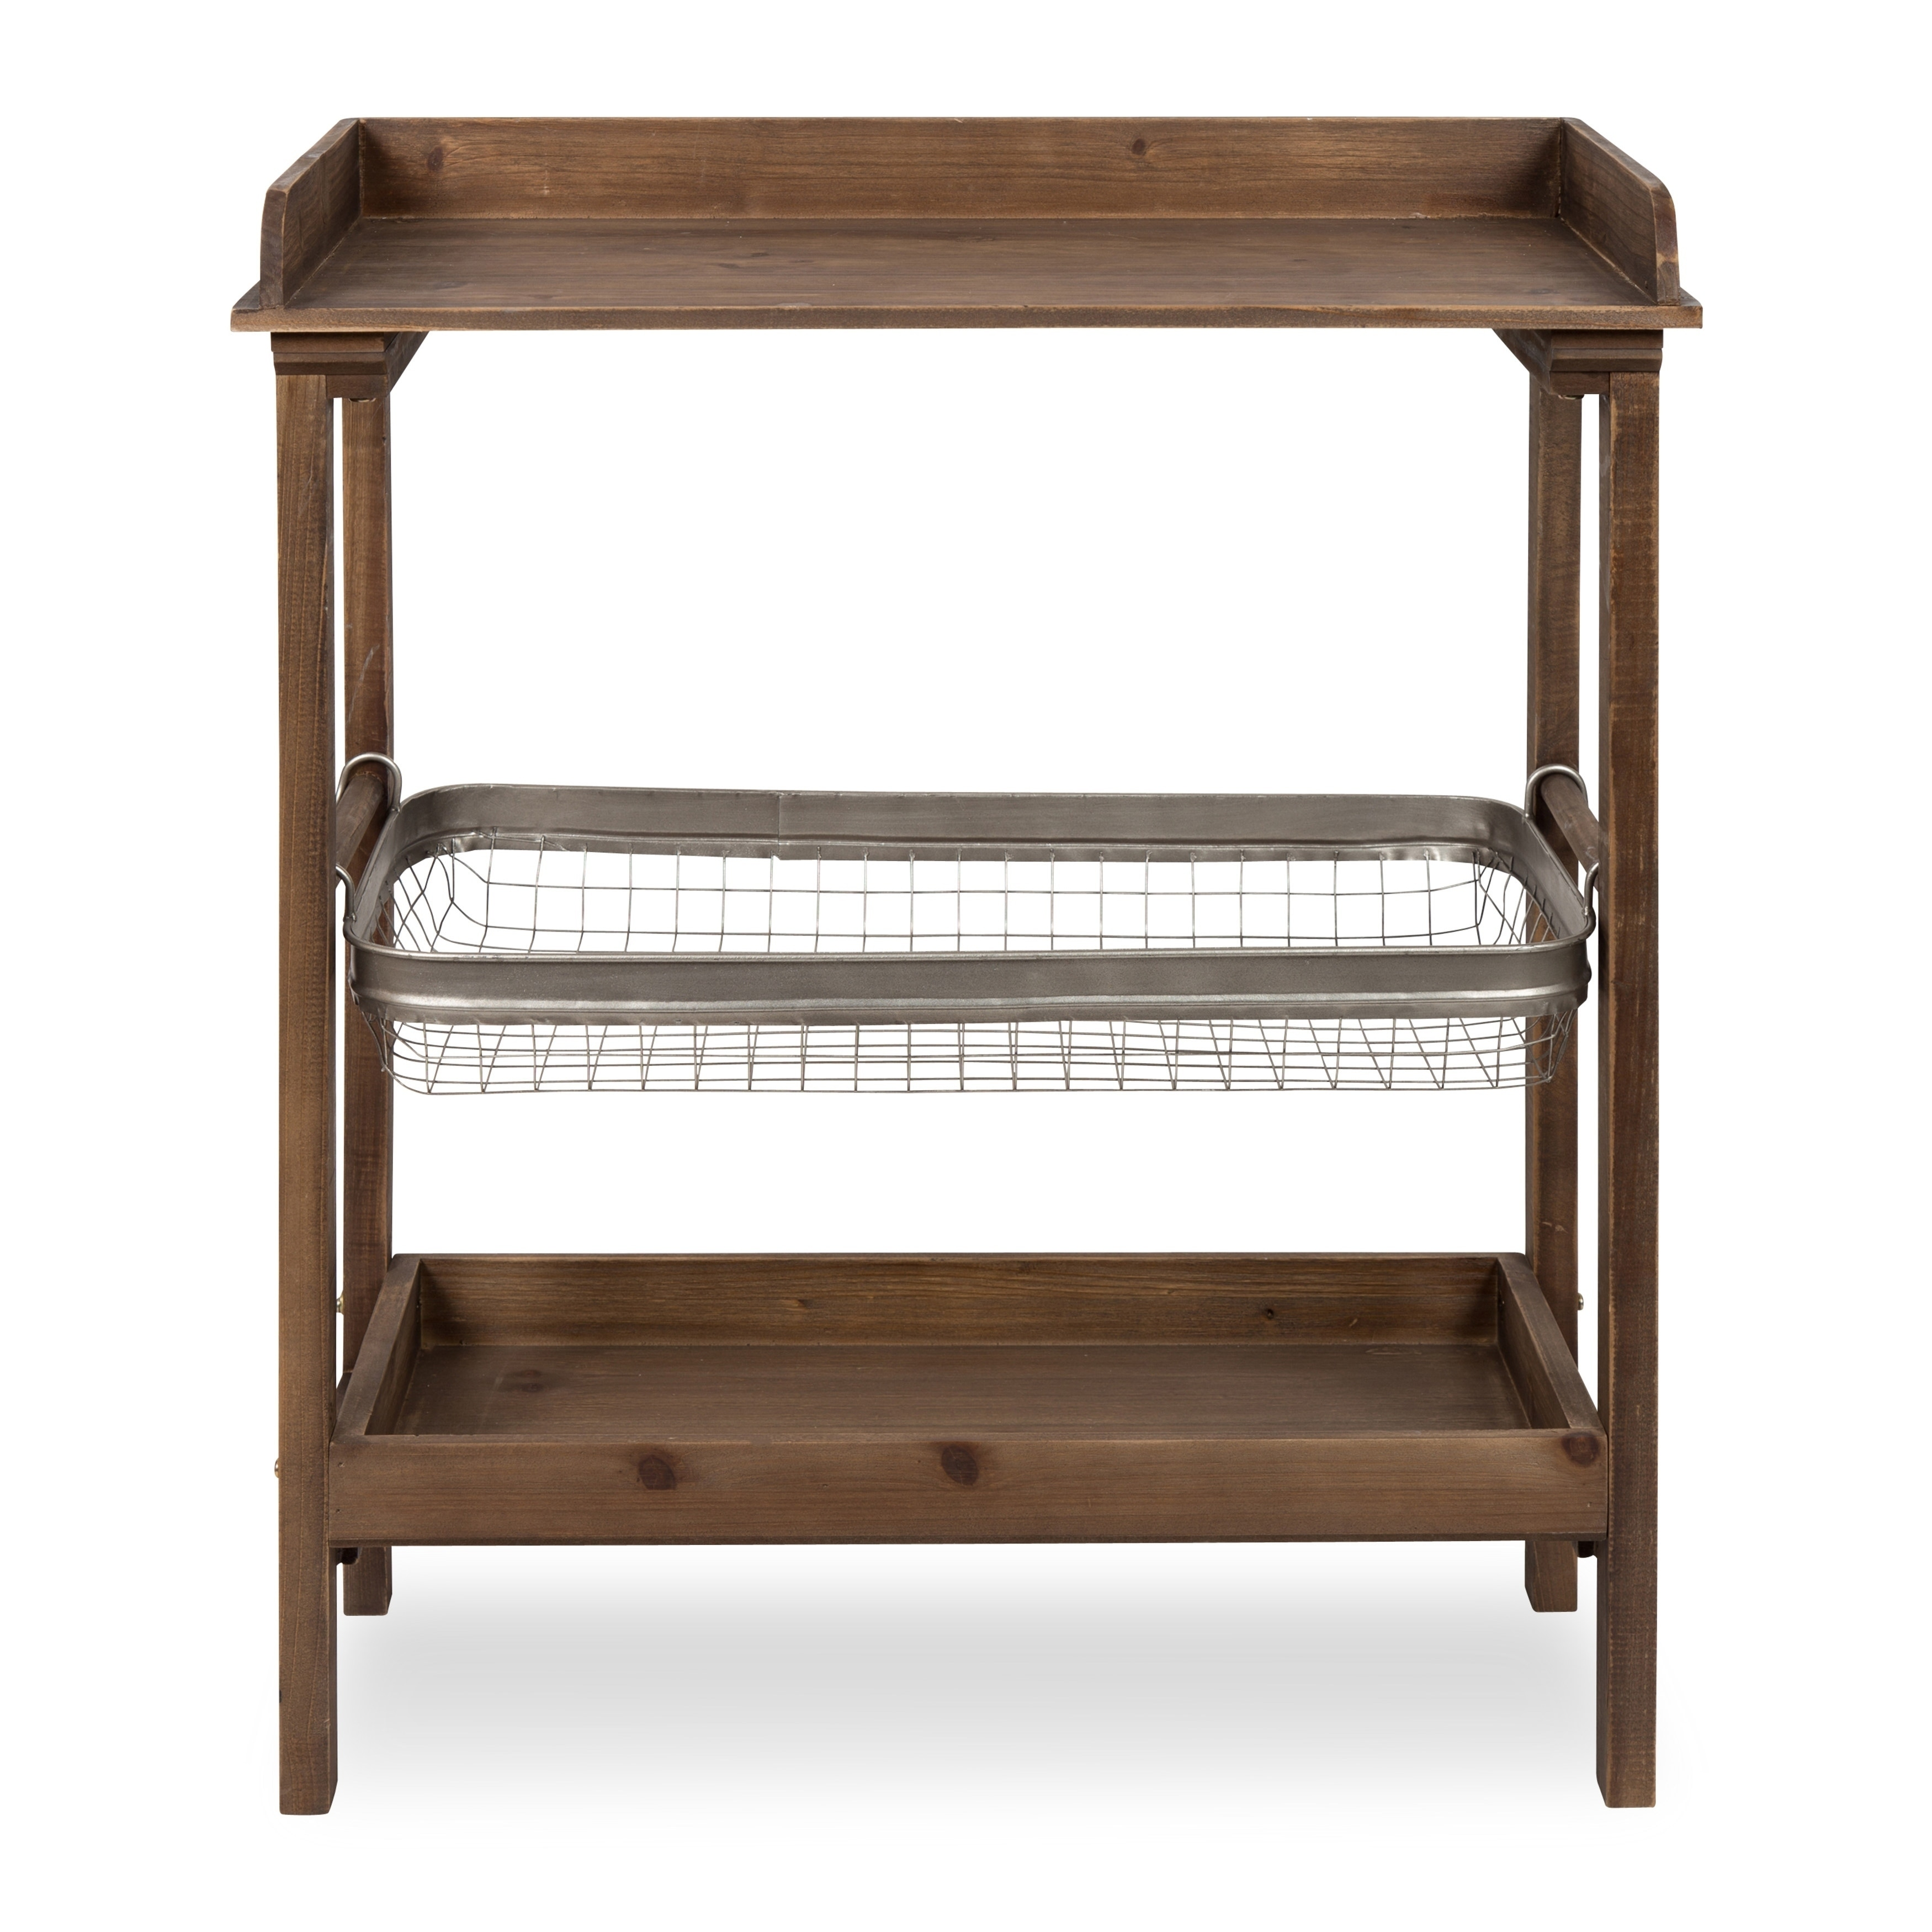 Merveilleux Kate And Laurel Yanisin Rustic Chic 3 Tier Table